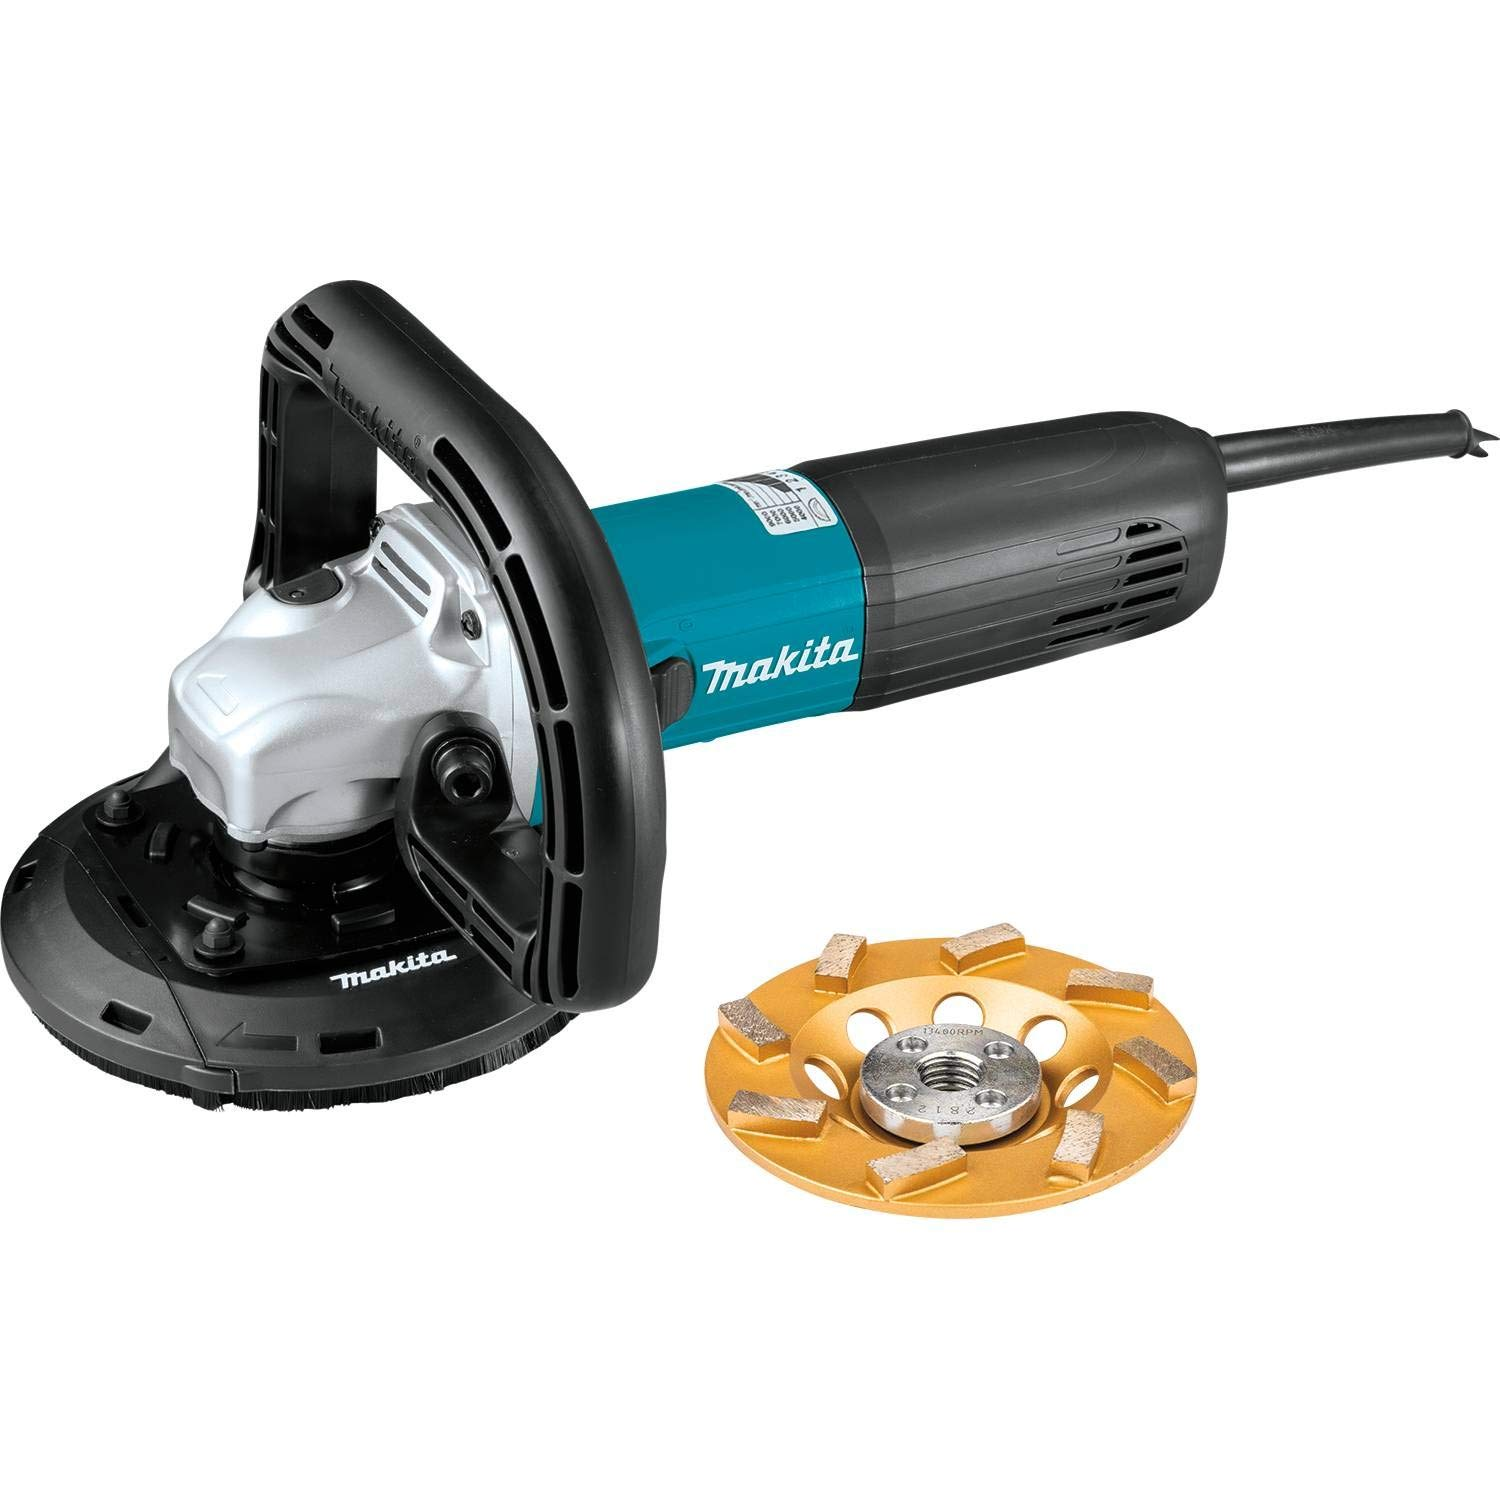 """Makita PC5010CX1 5"""" SJSII Compact Concrete Planer with Dust Extraction Shroud and Diamond Cup Wheel"""